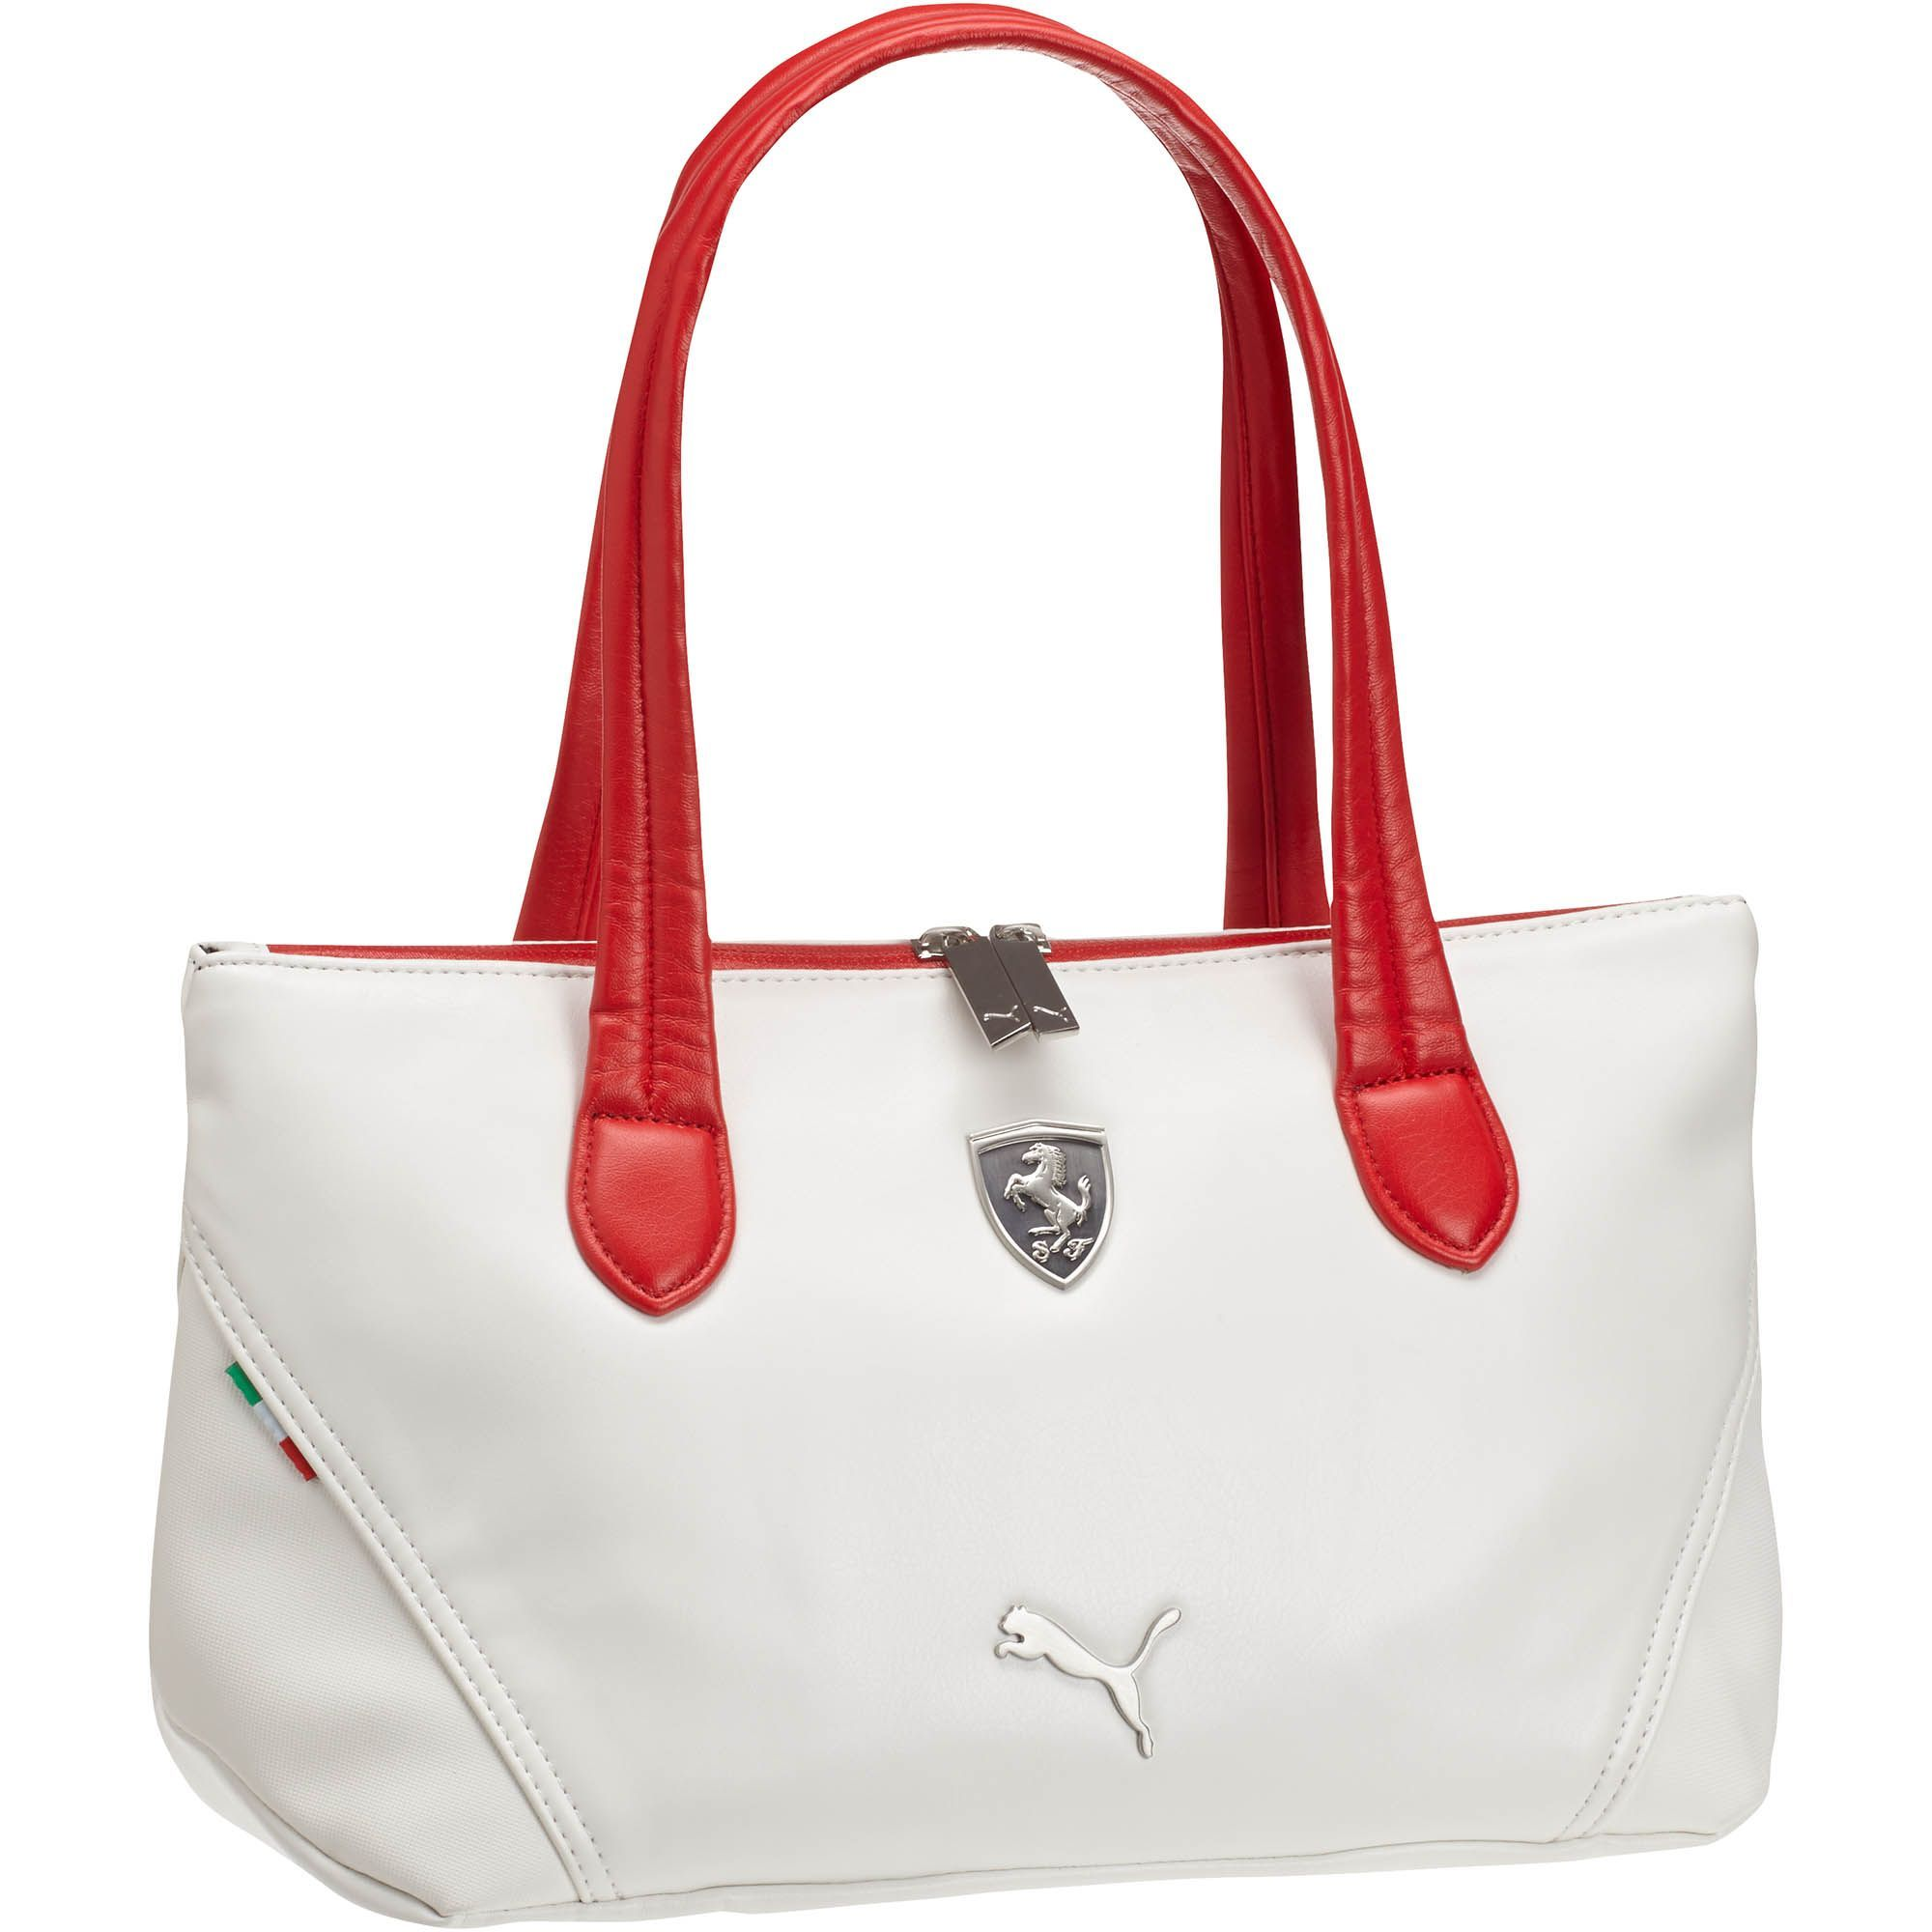 53b219d6e64c8 PUMA Ferrari Handbag | - from the official Puma® Online Store ...